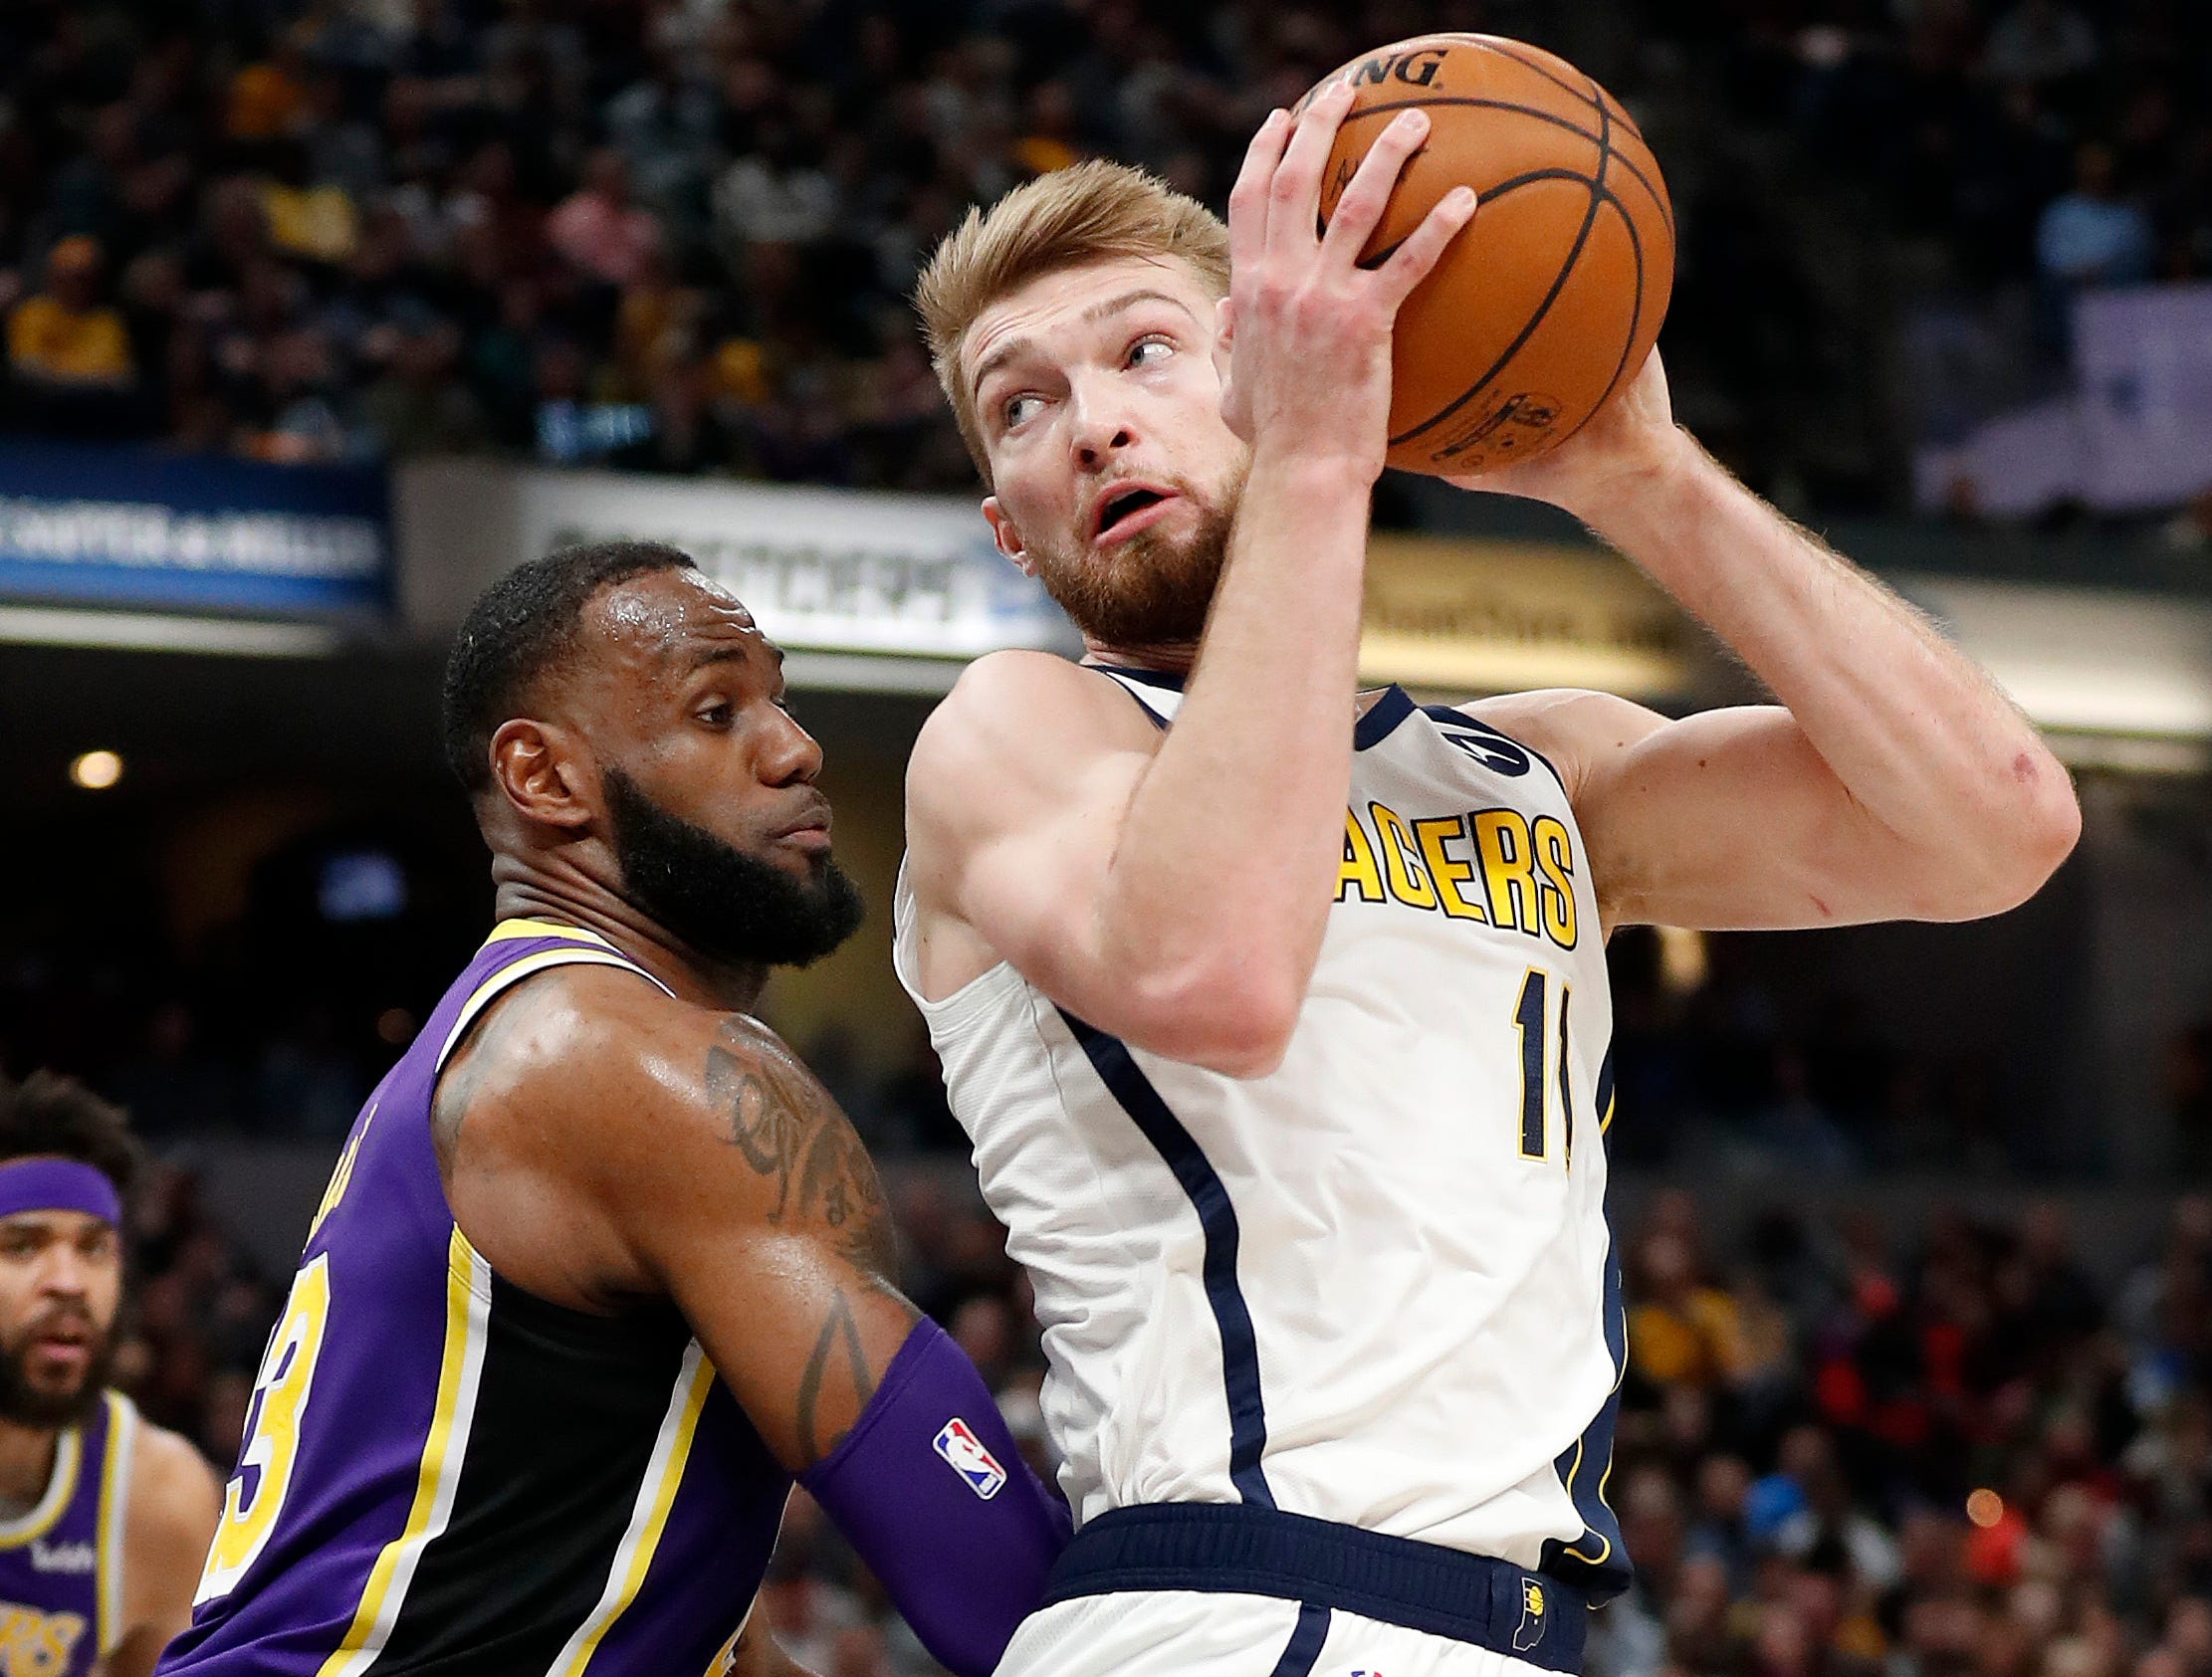 Indiana Pacers forward Domantas Sabonis (11) spins on Los Angeles Lakers forward LeBron James (23) in the first half of their game at Bankers Life Fieldhouse on Tuesday, Feb. 5, 2019.